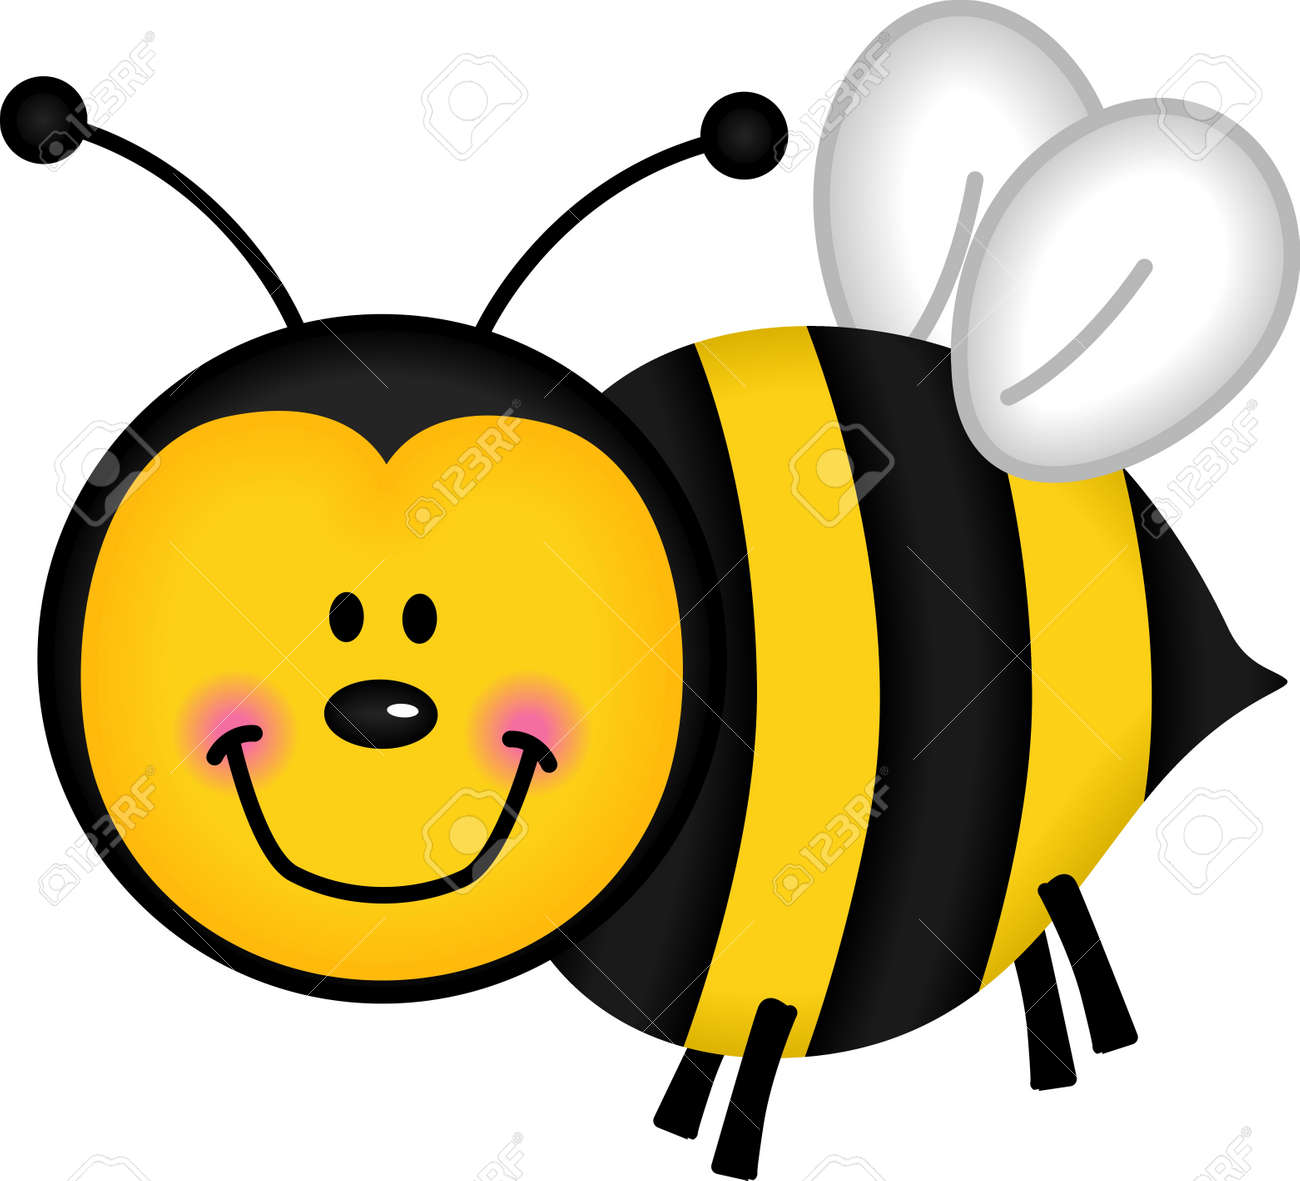 Image result for pictures of bees